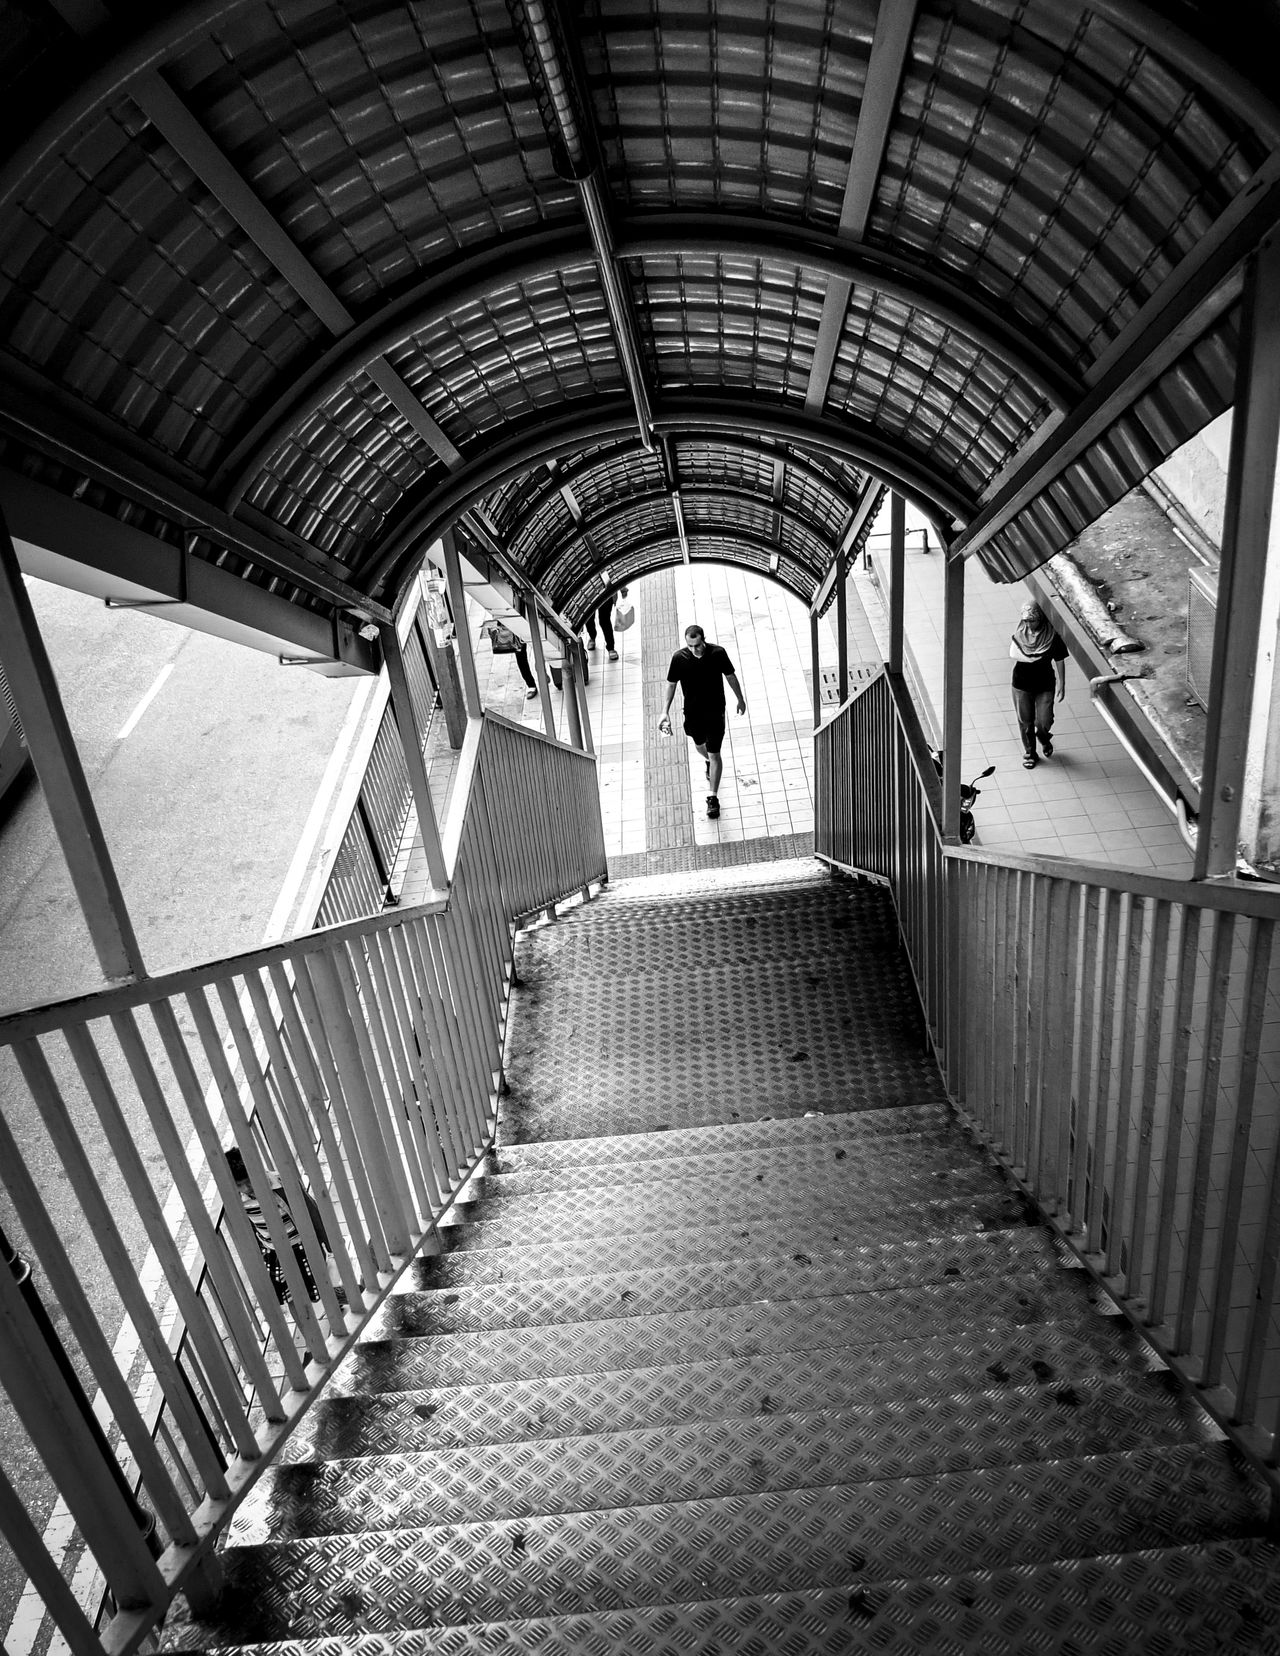 Man about to walk up flight of stairs of an overhead bridge Arch Architecture Ascending B&w Street Photography Black And White Built Structure City Looking Down Man Perspective Railing Stairs Steps Streetphotography Tunnel Urbanphotography Walking